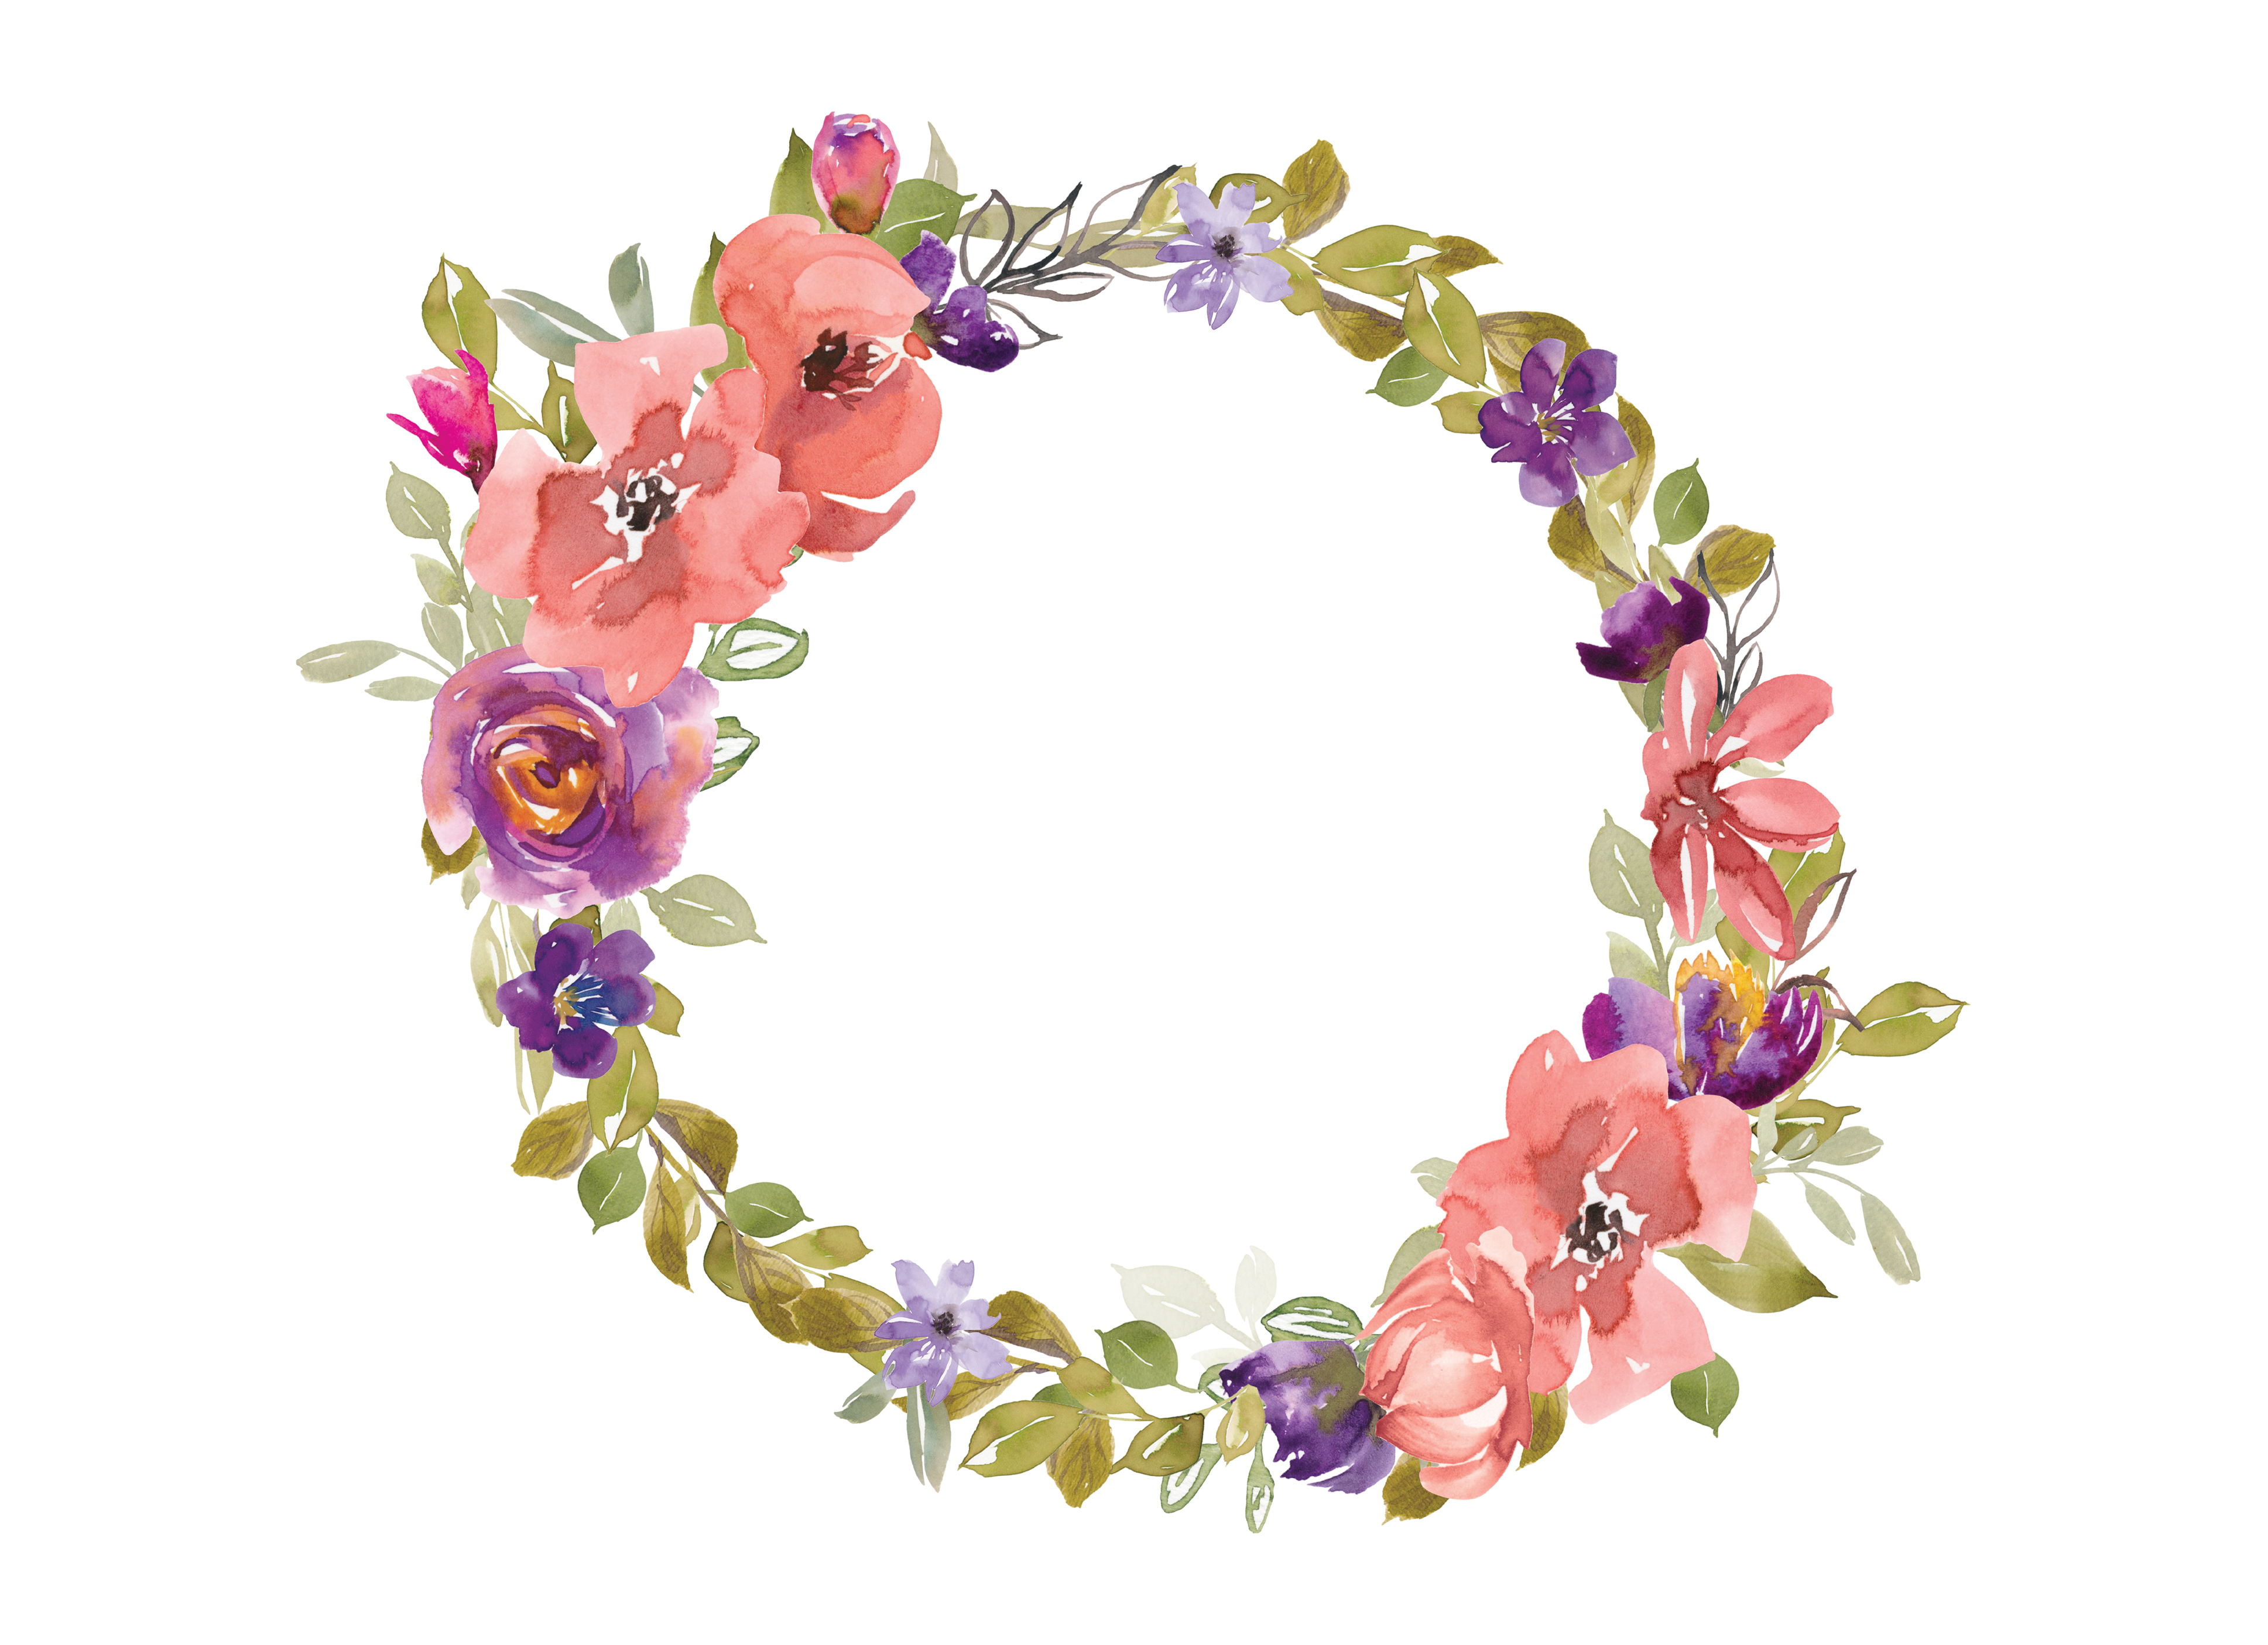 svg royalty free stock Flower wreath clipart. Watercolor salmon and purple